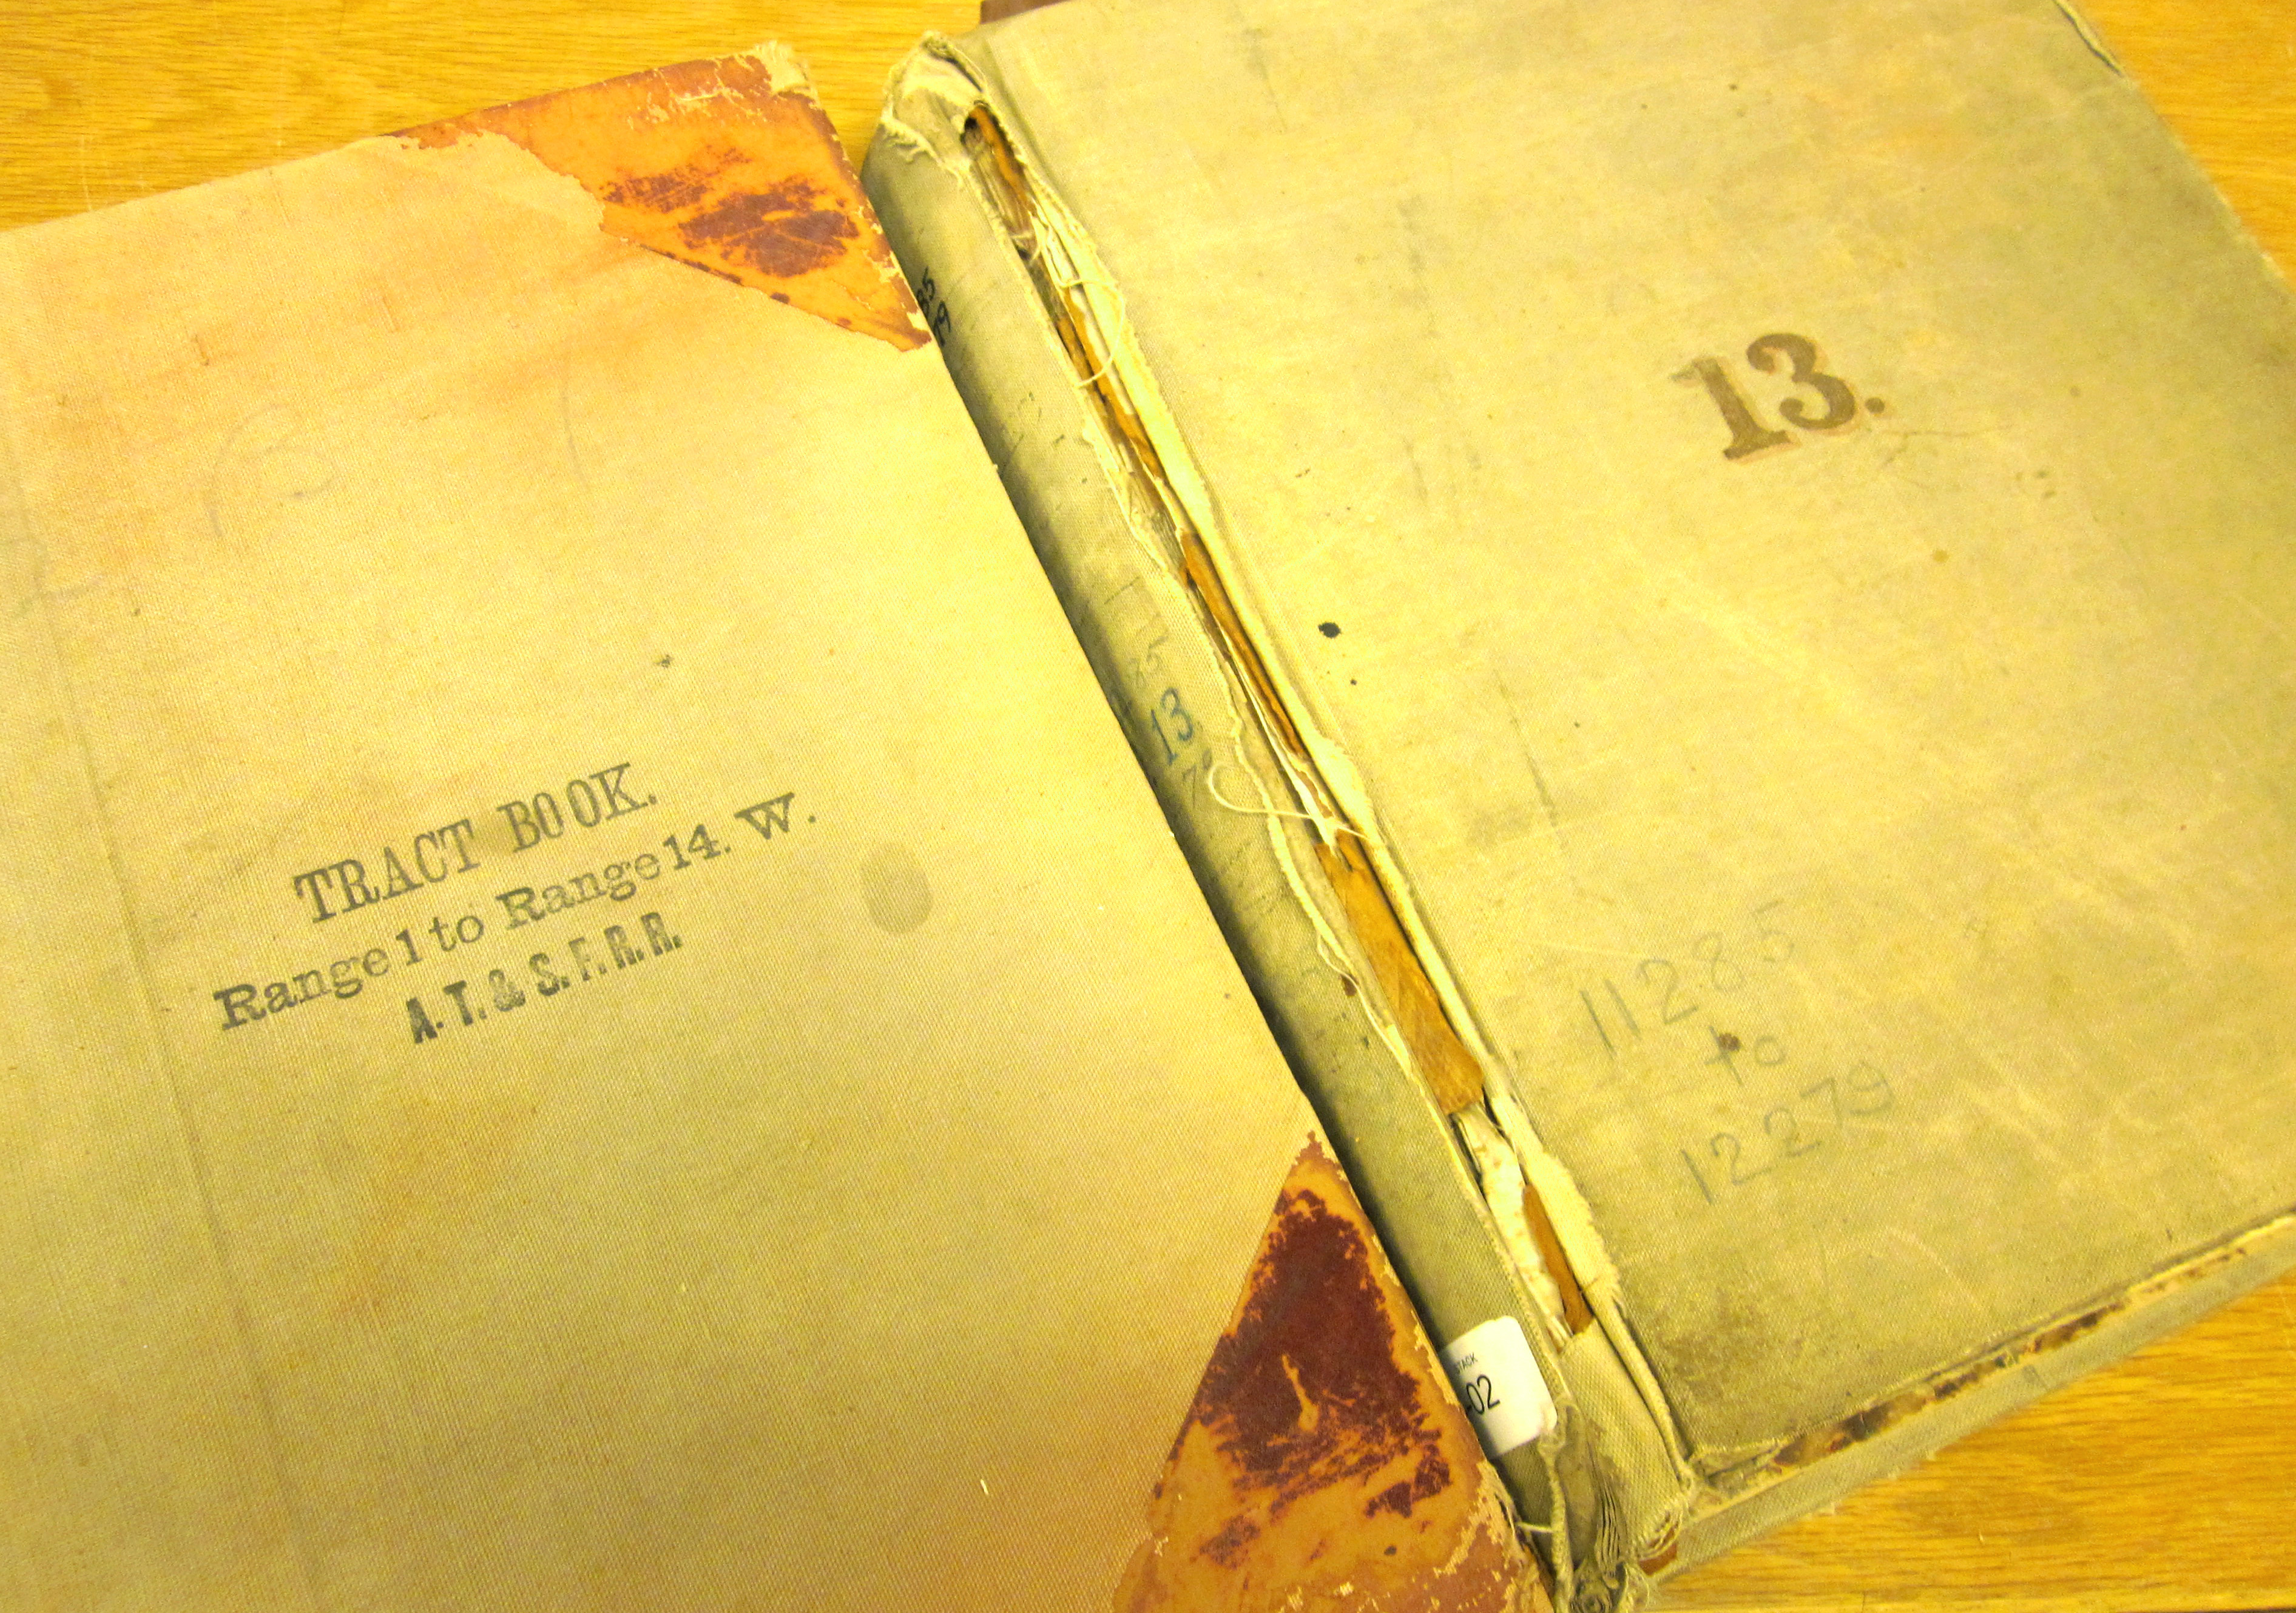 AT&SF Railroad Tract Book & Deed Record Volumes